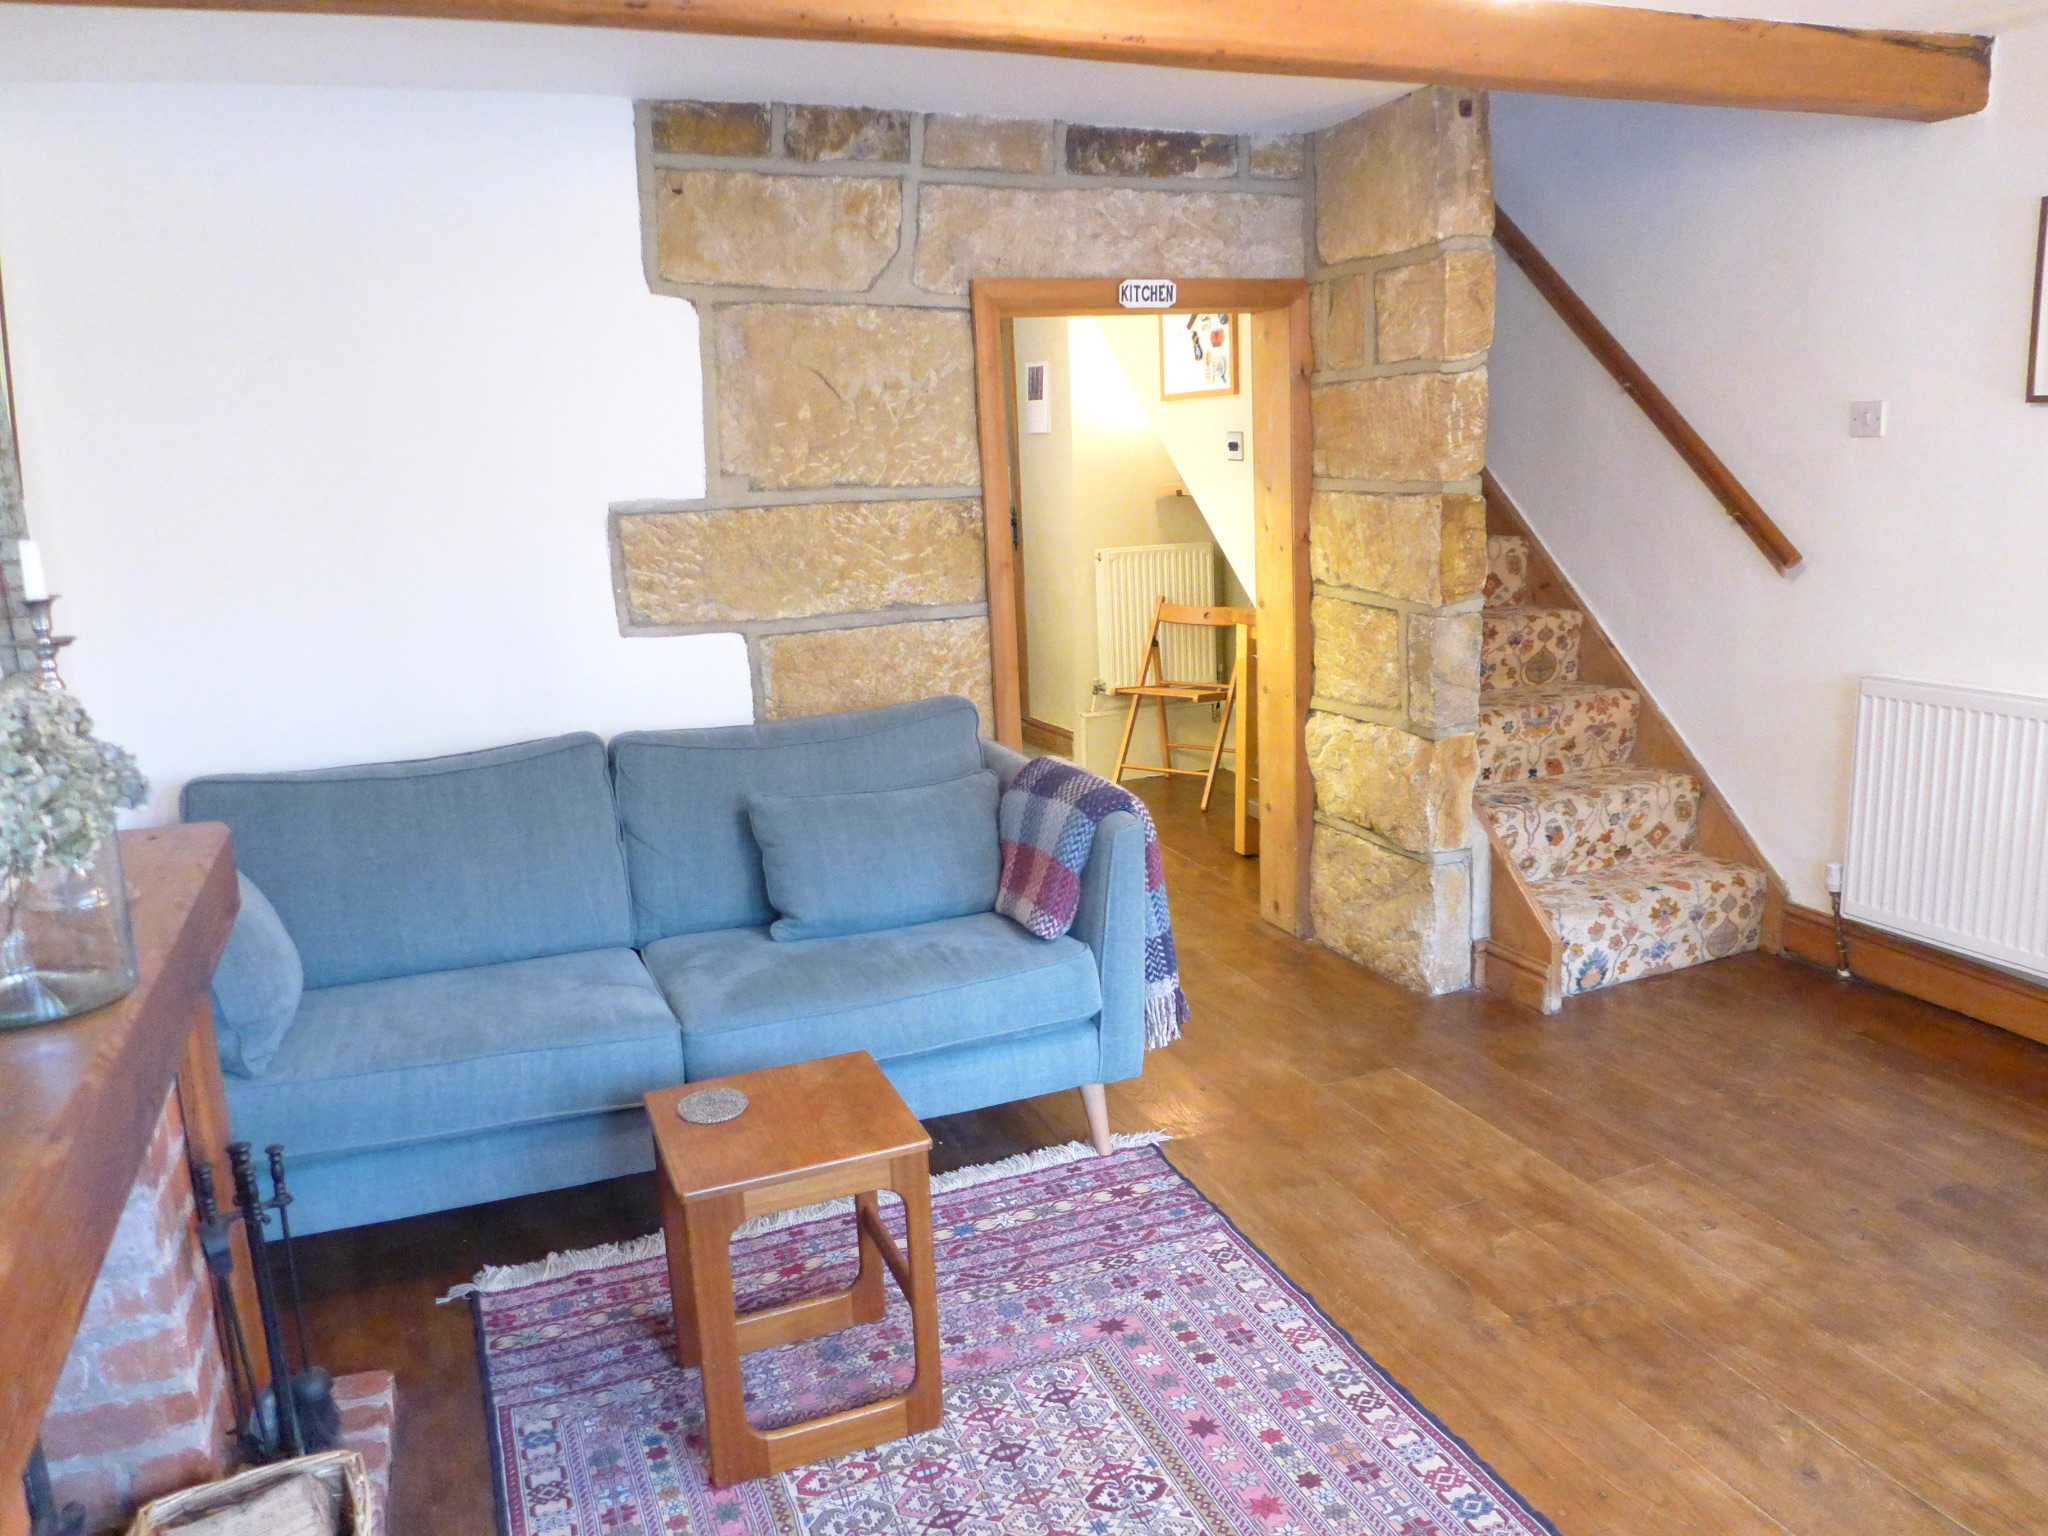 2 bedroom cottage house For Sale in Calderdale - Photograph 4.